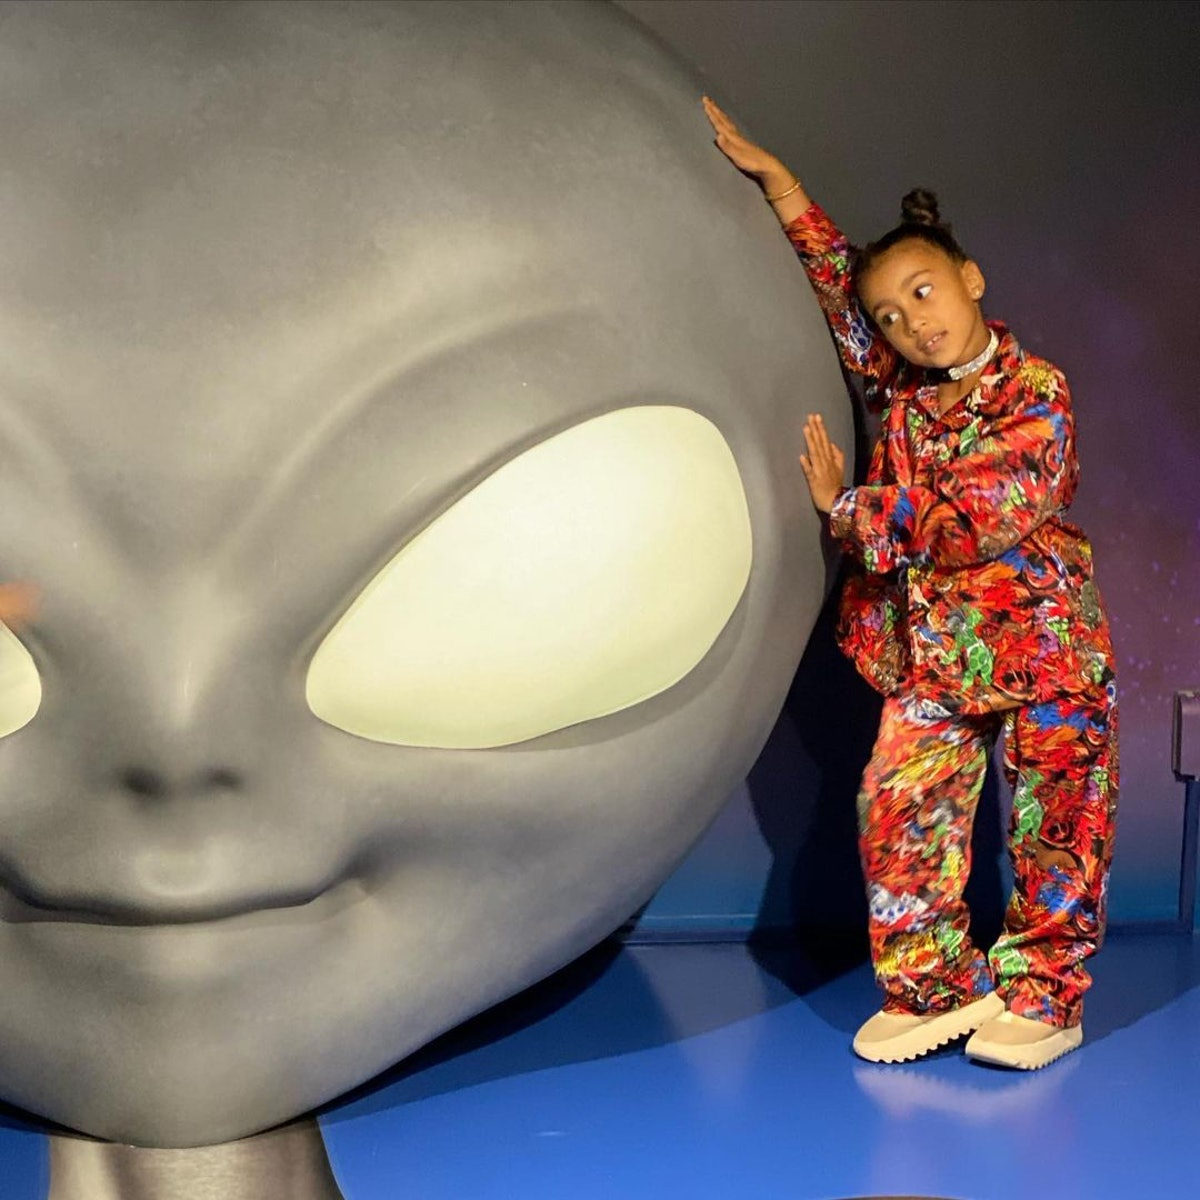 North West getting cozy with a giant alien